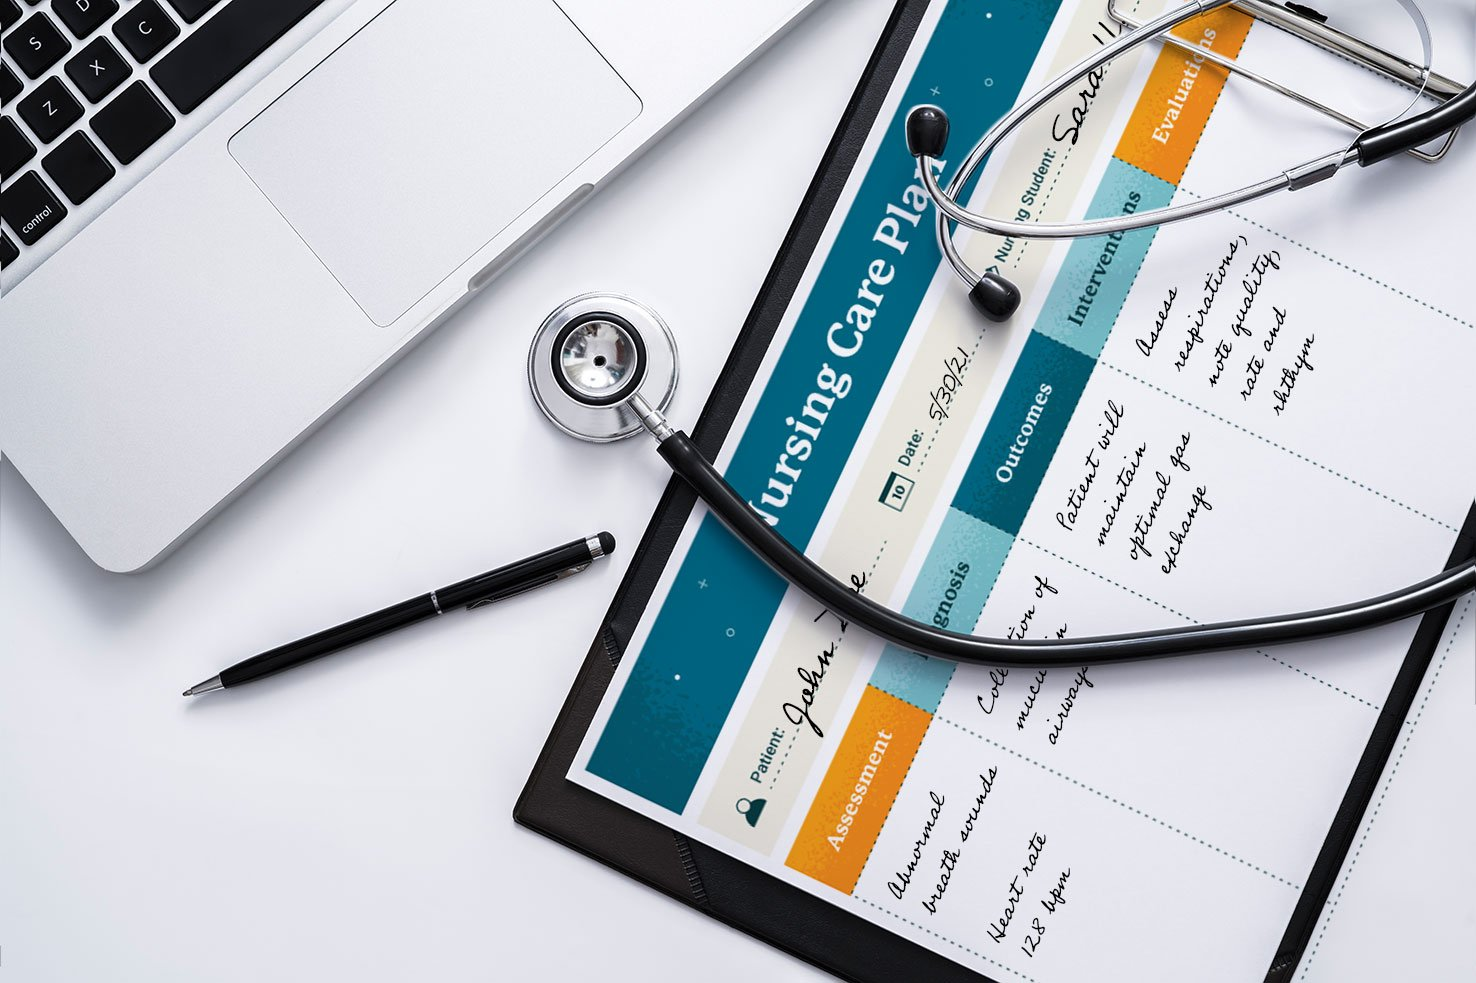 Sample nursing care plan sheet on desk with laptop and stethoscope